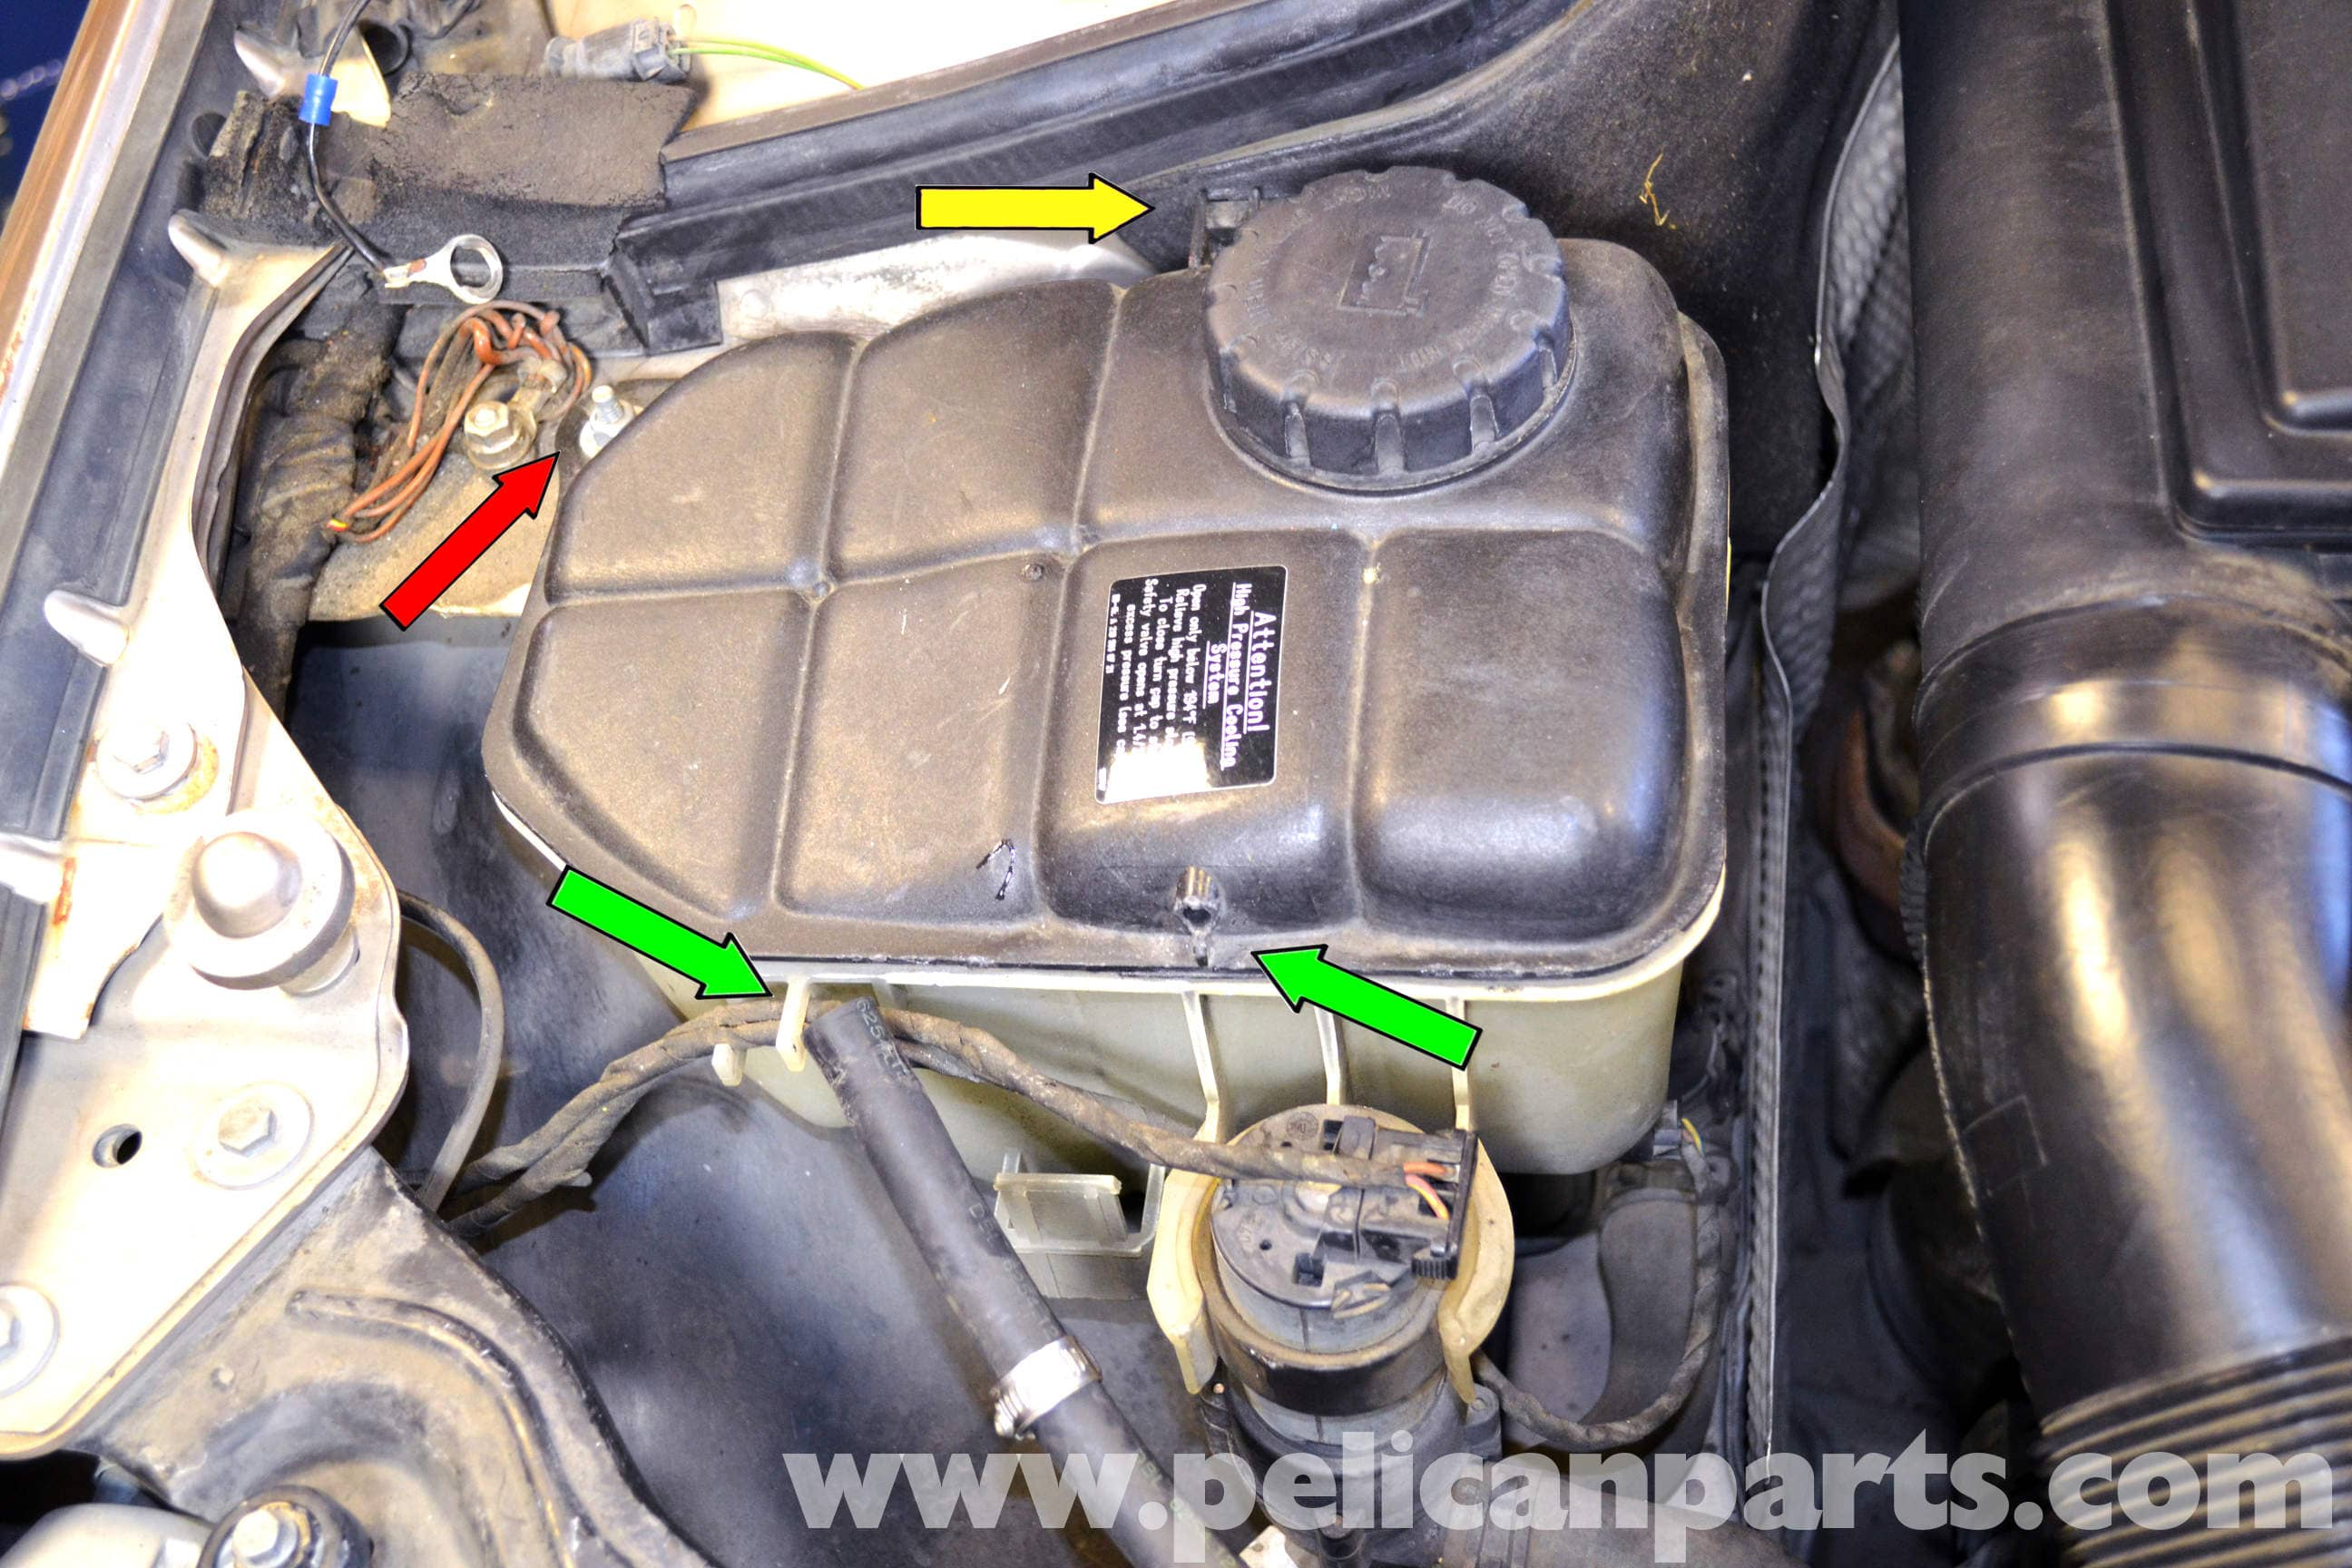 Mercedes-Benz W203 Coolant Expansion Tank Replacement